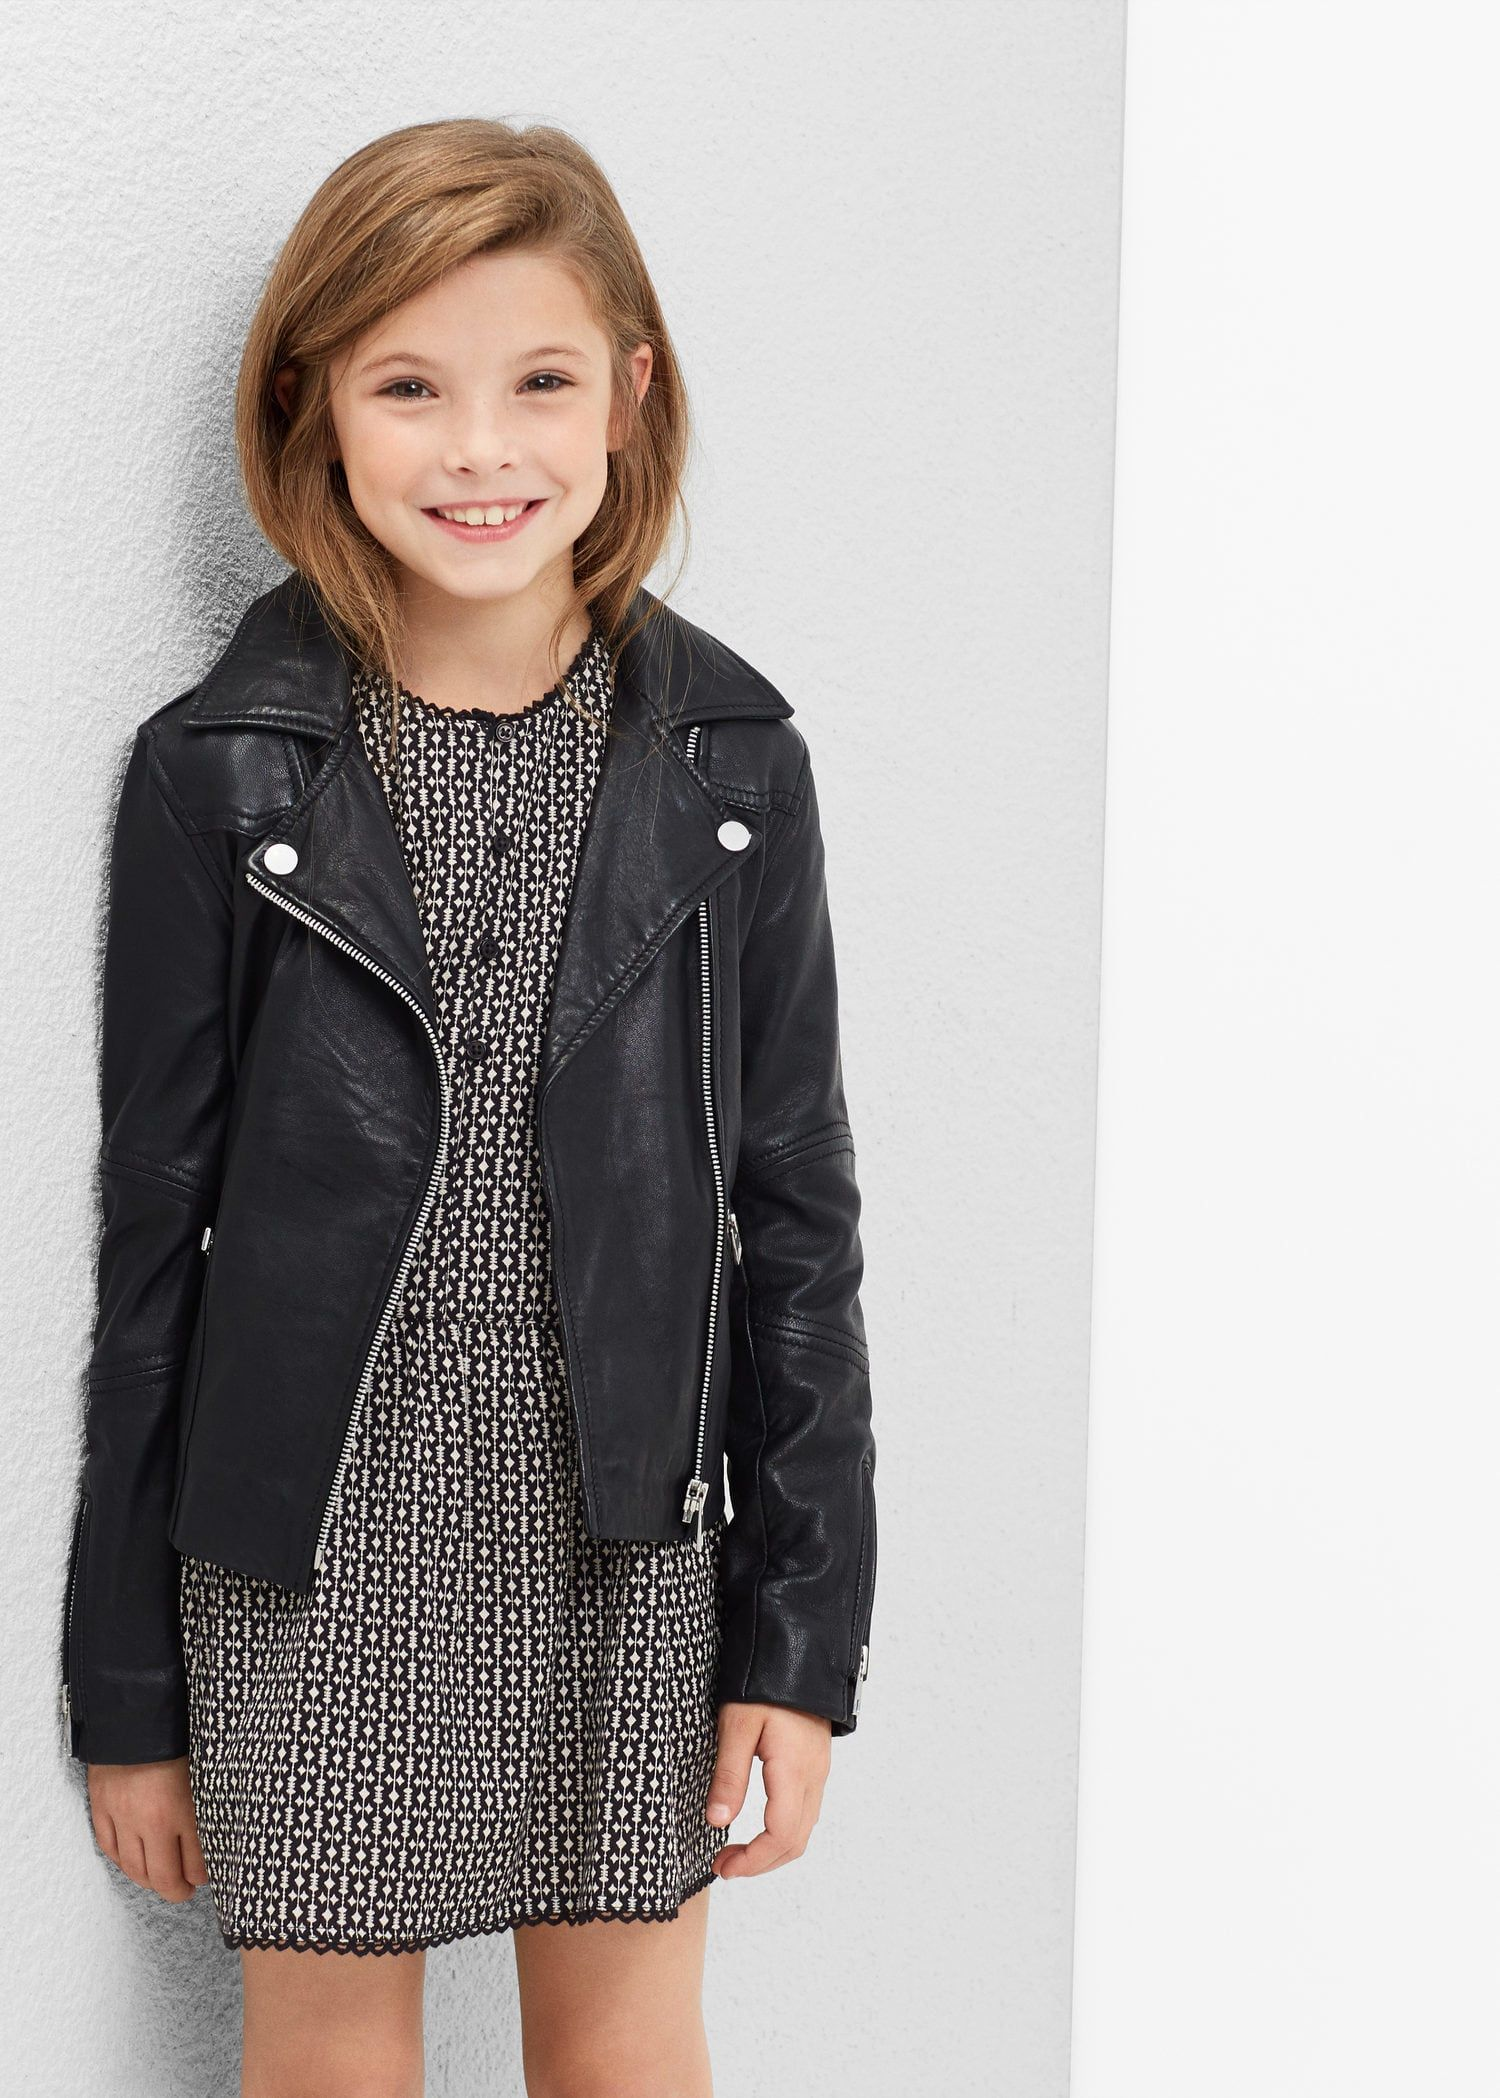 Zip Leather Jacket Girls With Images Little Girl Haircuts [ 2098 x 1500 Pixel ]